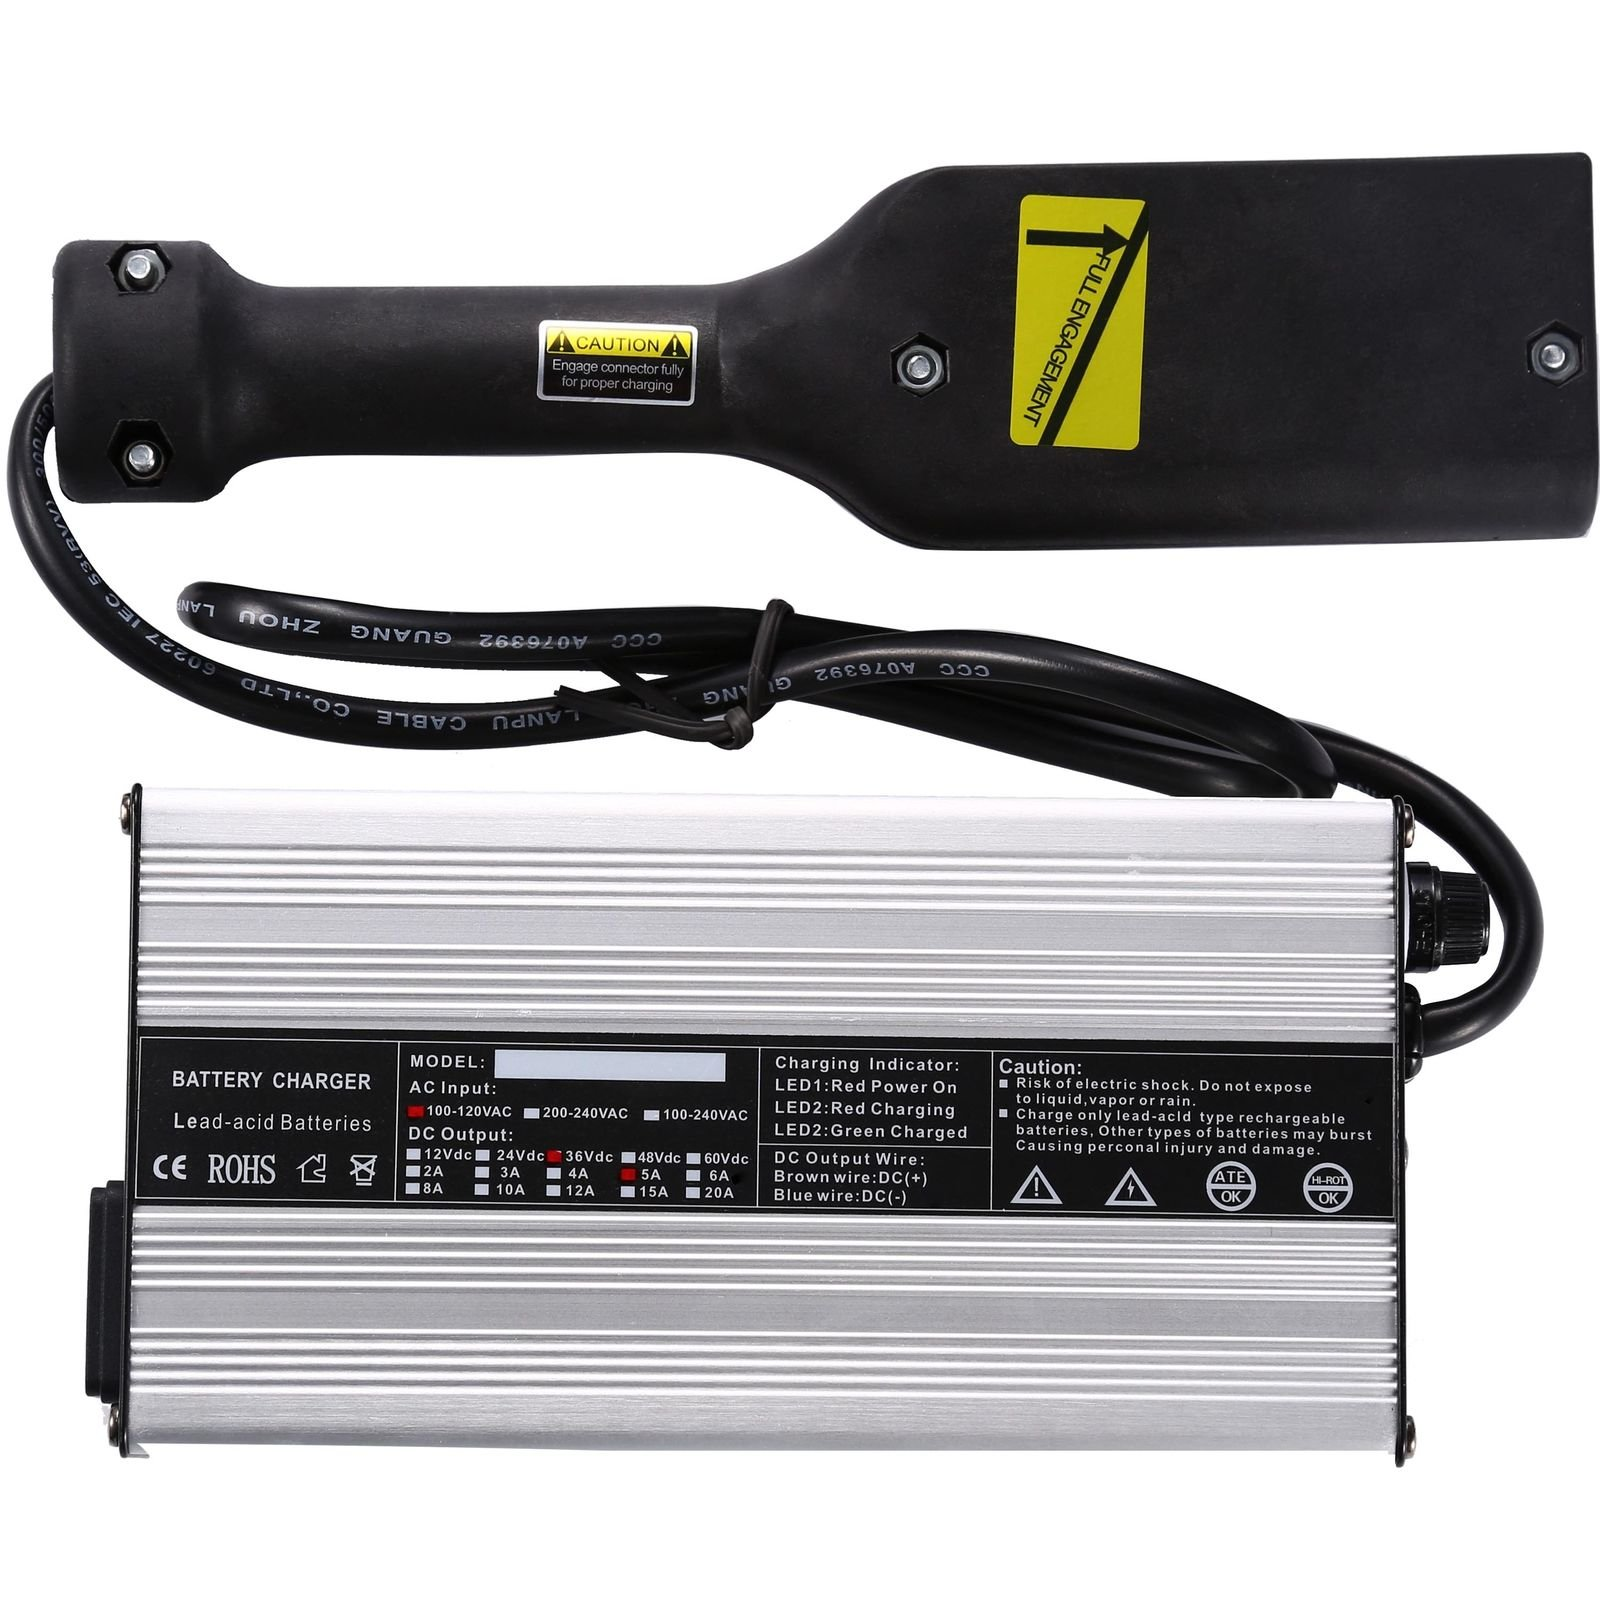 36V Powerwise Golf Cart Battery Charger 36 Volt For EZ-GO TXT Medalist D Style by JEM&JULES (Image #1)